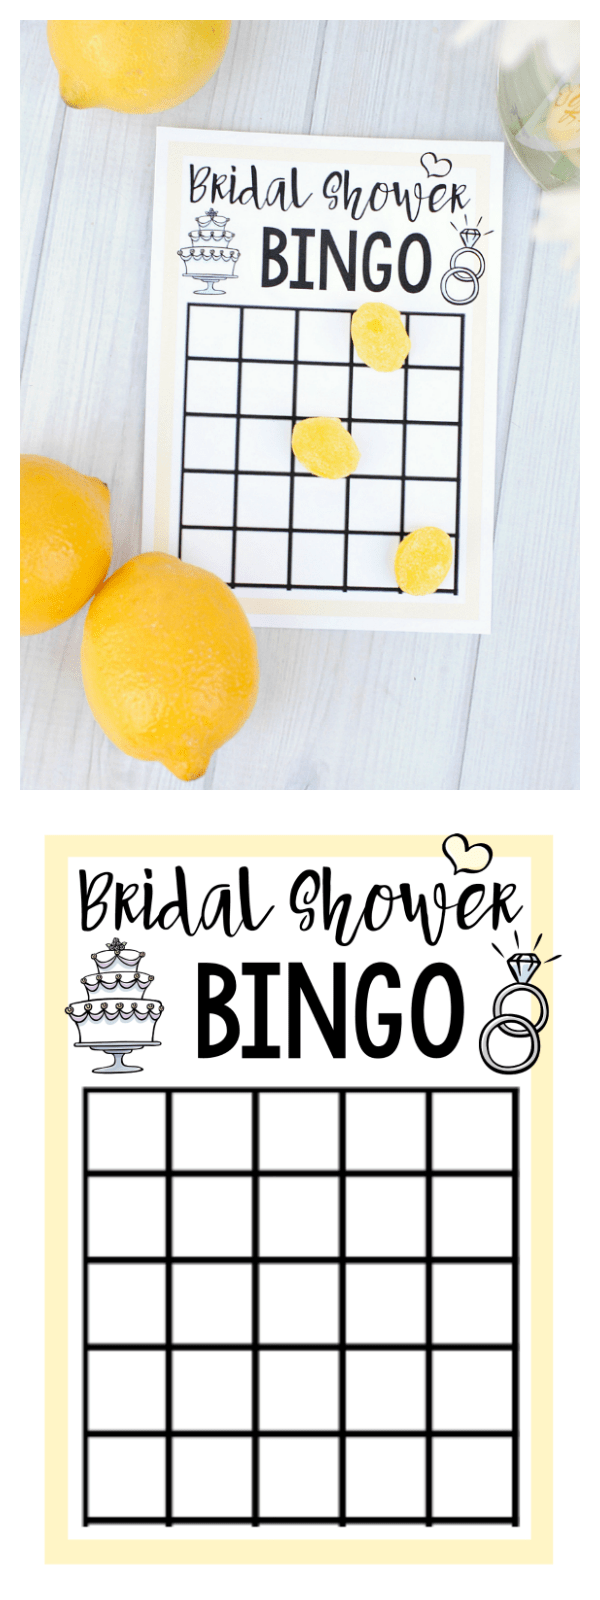 photograph relating to Free Printable Bridal Shower Bingo known as Free of charge Printable Bridal Shower Video games Enjoyment-Squared